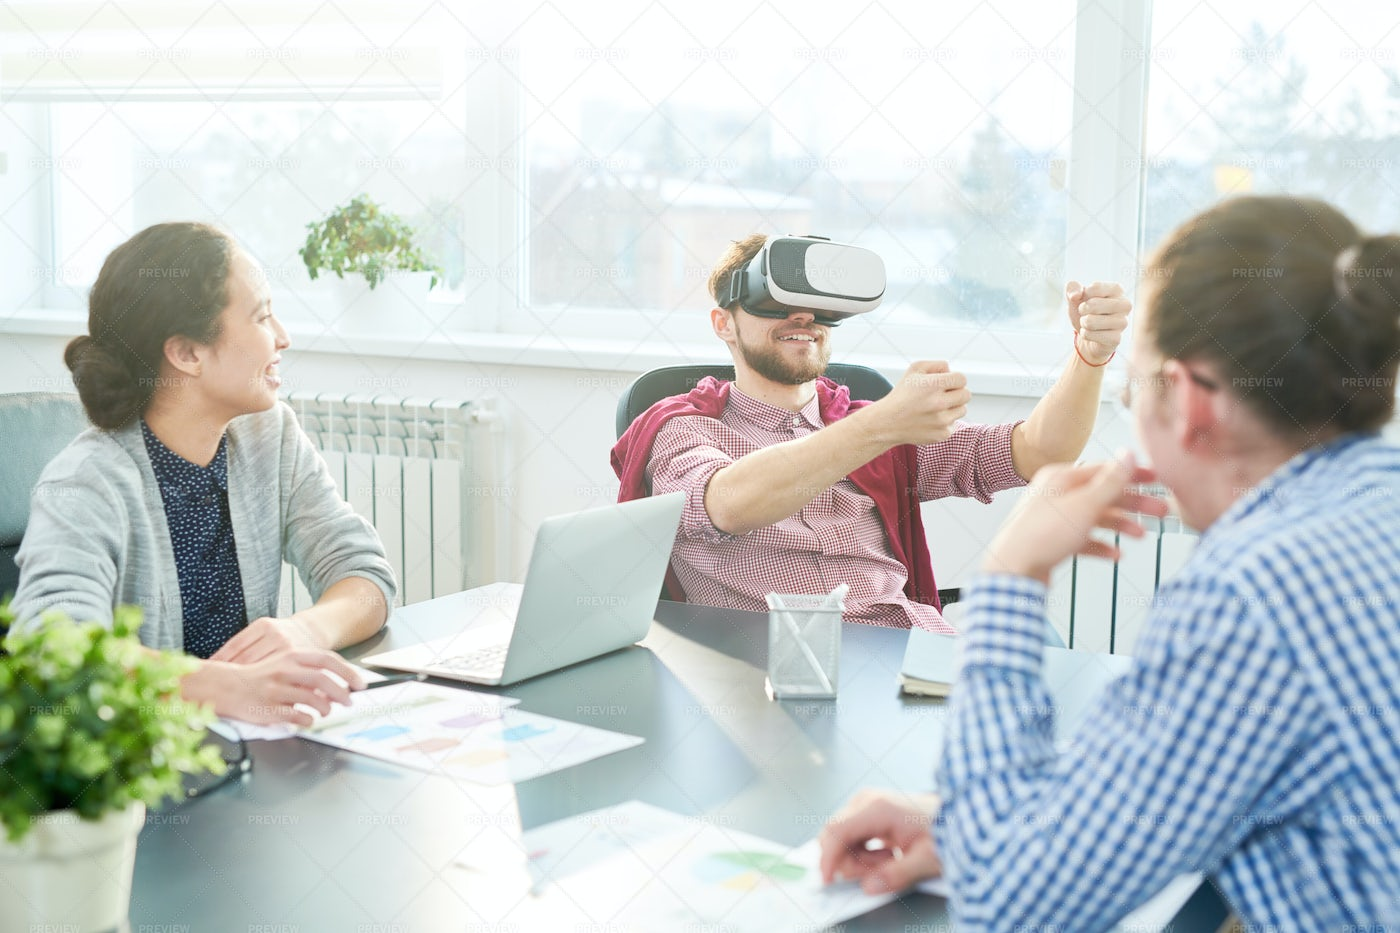 Office Workers Trying New Gadget: Stock Photos